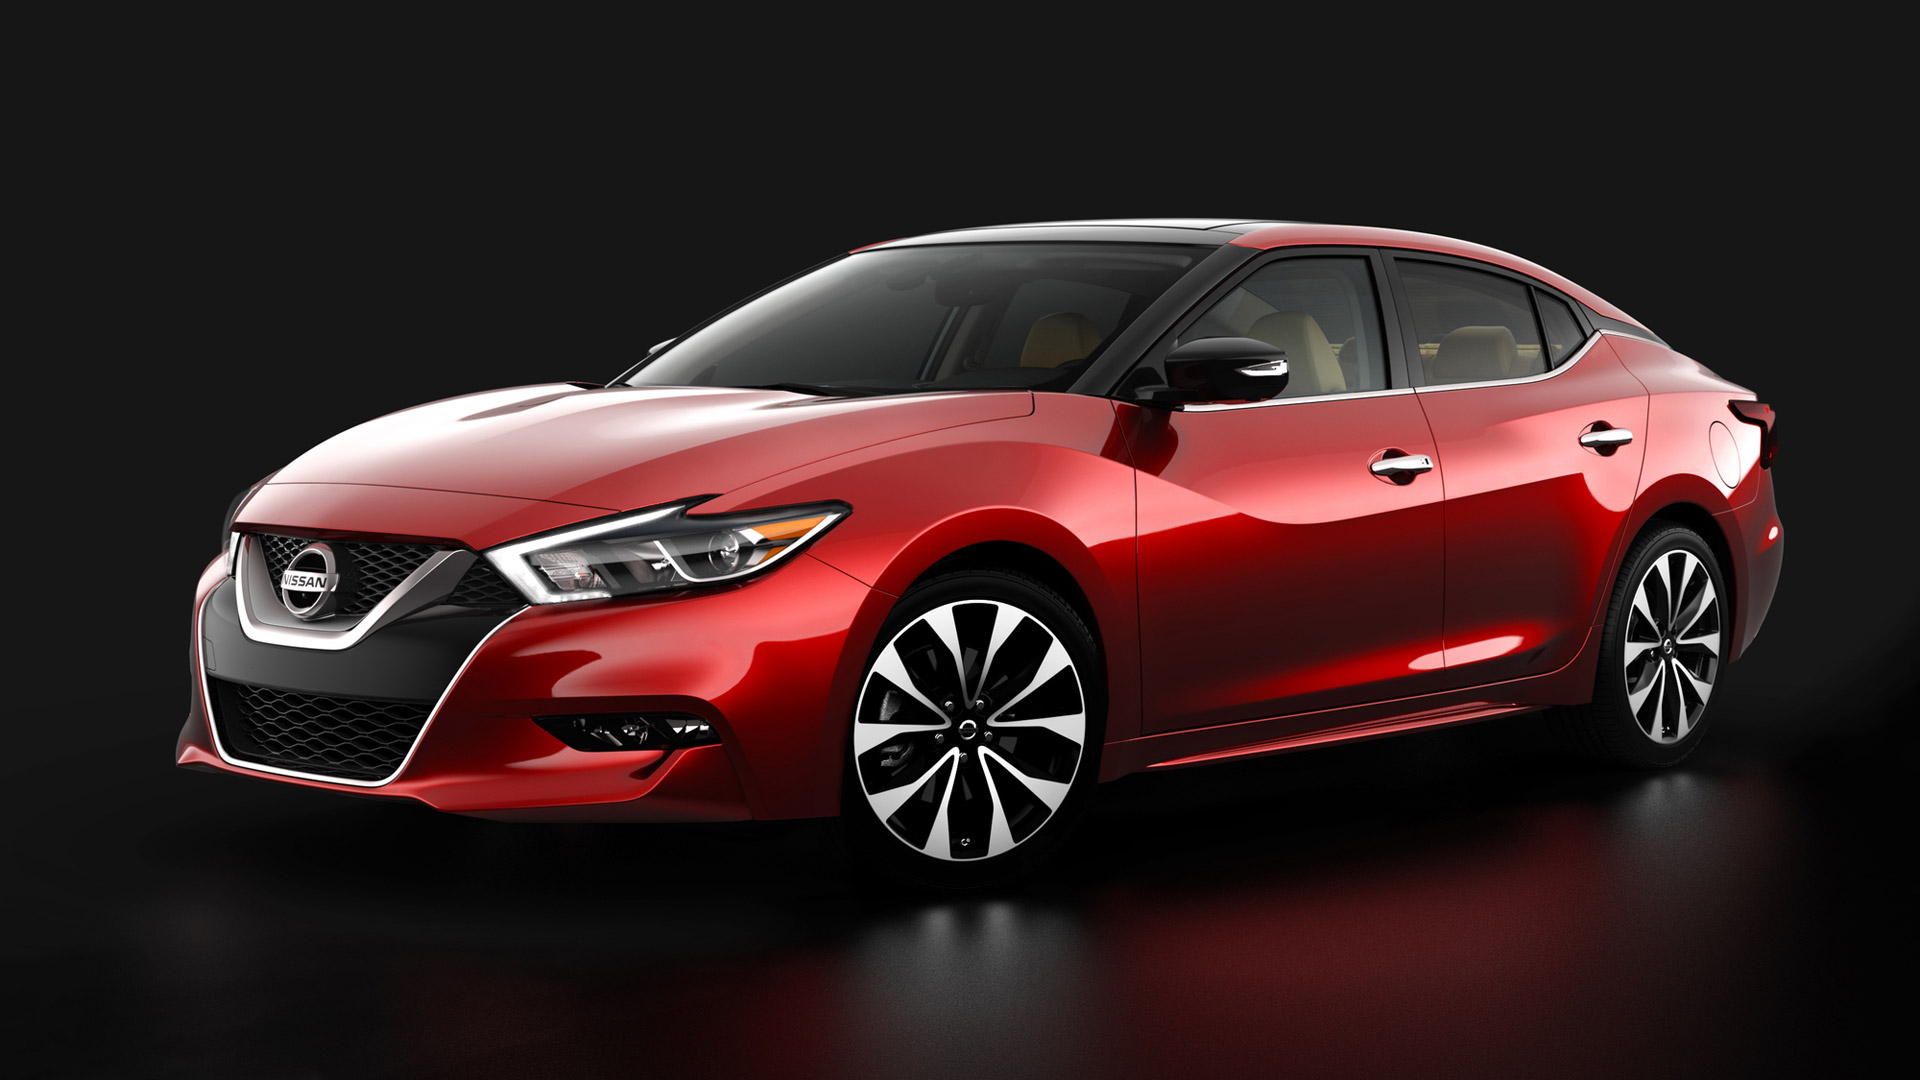 2016 nissan maxima shown in super bowl spot--updated with new photos